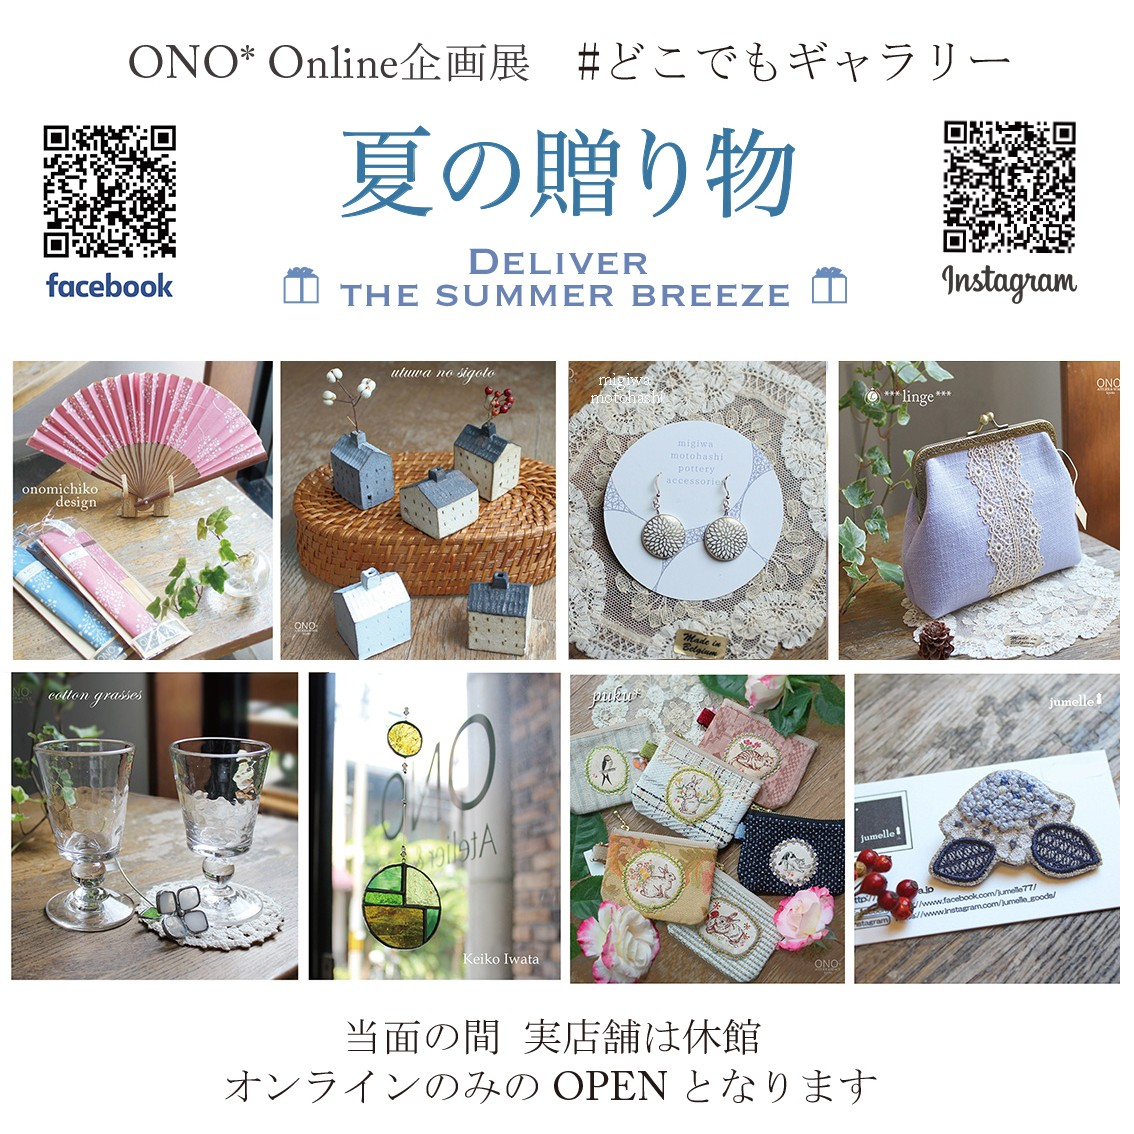 Online常設展『夏の贈り物 〜Deliver the summer breeze〜』開催中☆